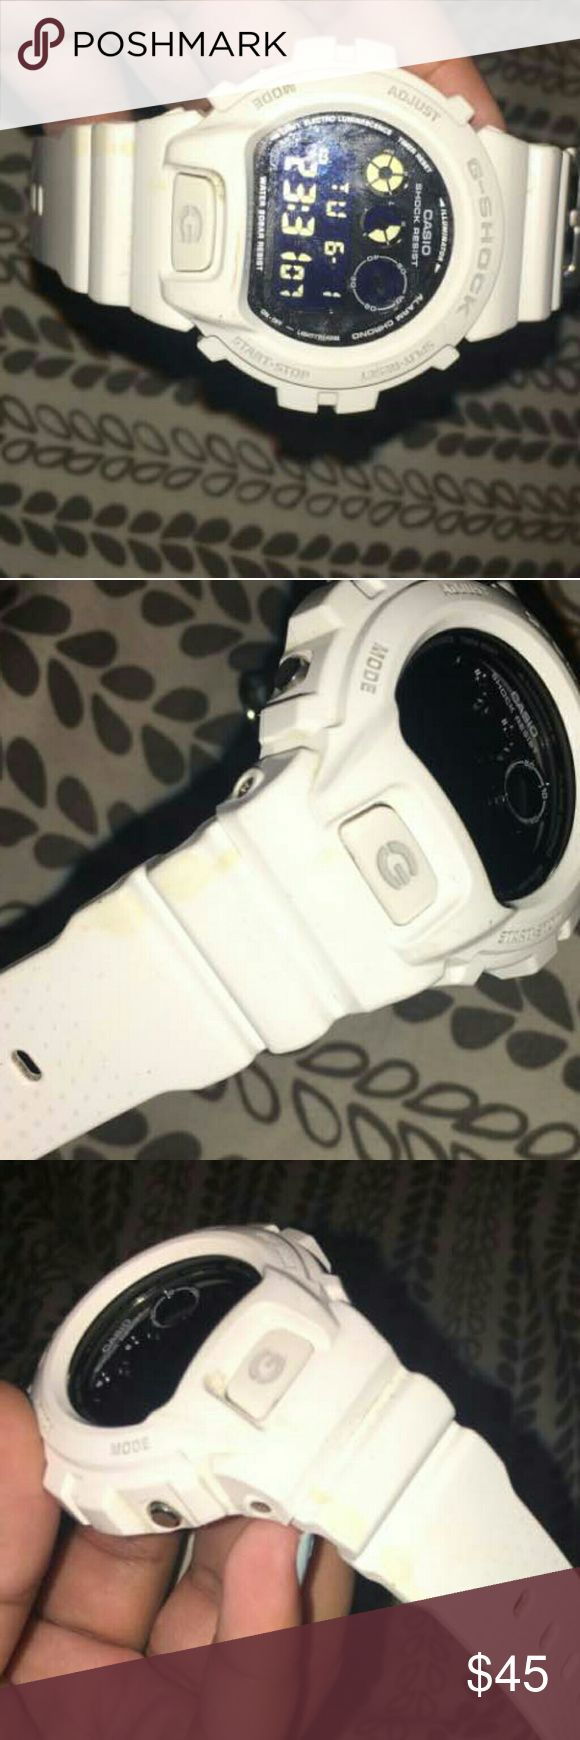 White G Shock White G shock used a couple times. Minor discoloration throughout the watch band . Military time Timer  Glow in the dark button works  Great condition minor scratches Needs a new home. Accepting reasonable offers. G-Shock Accessories Watches